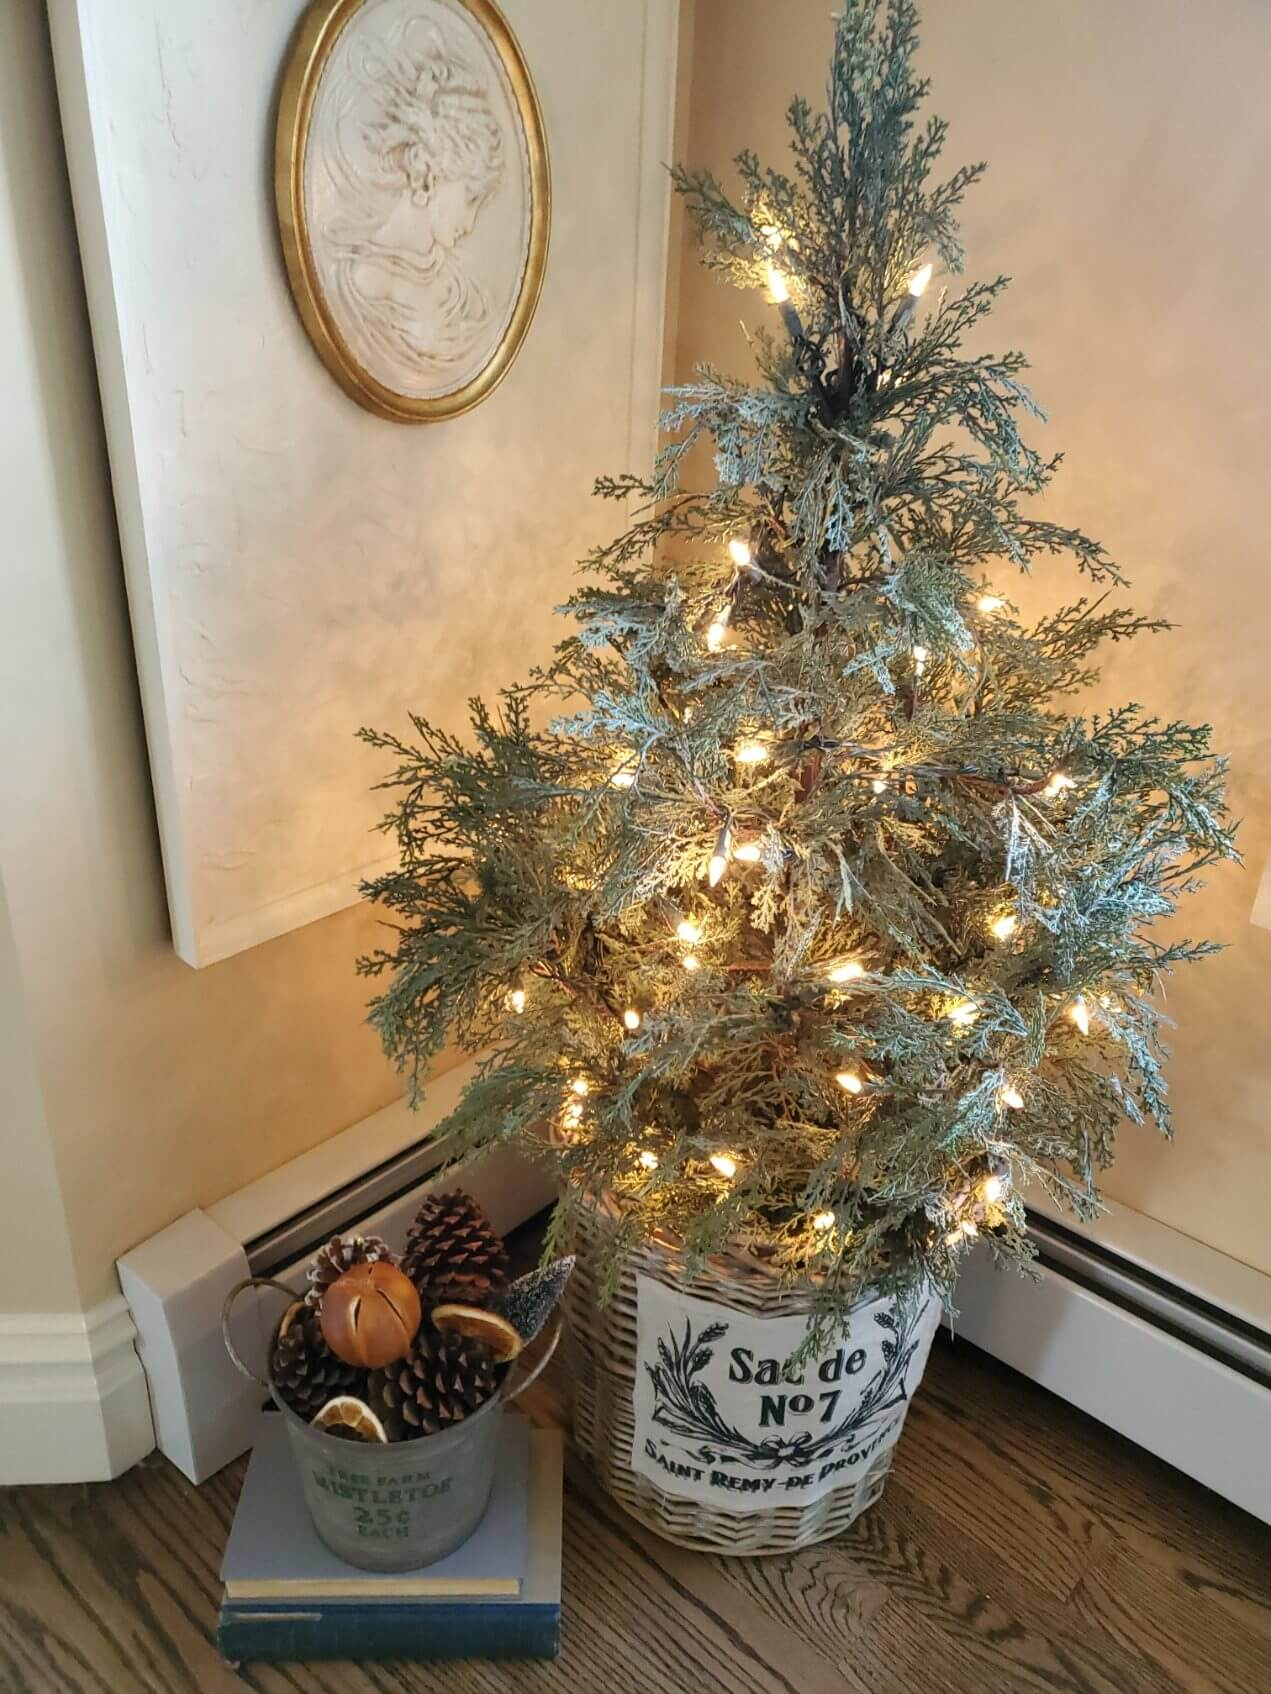 Rustic Small Christmas Tree in a Basket